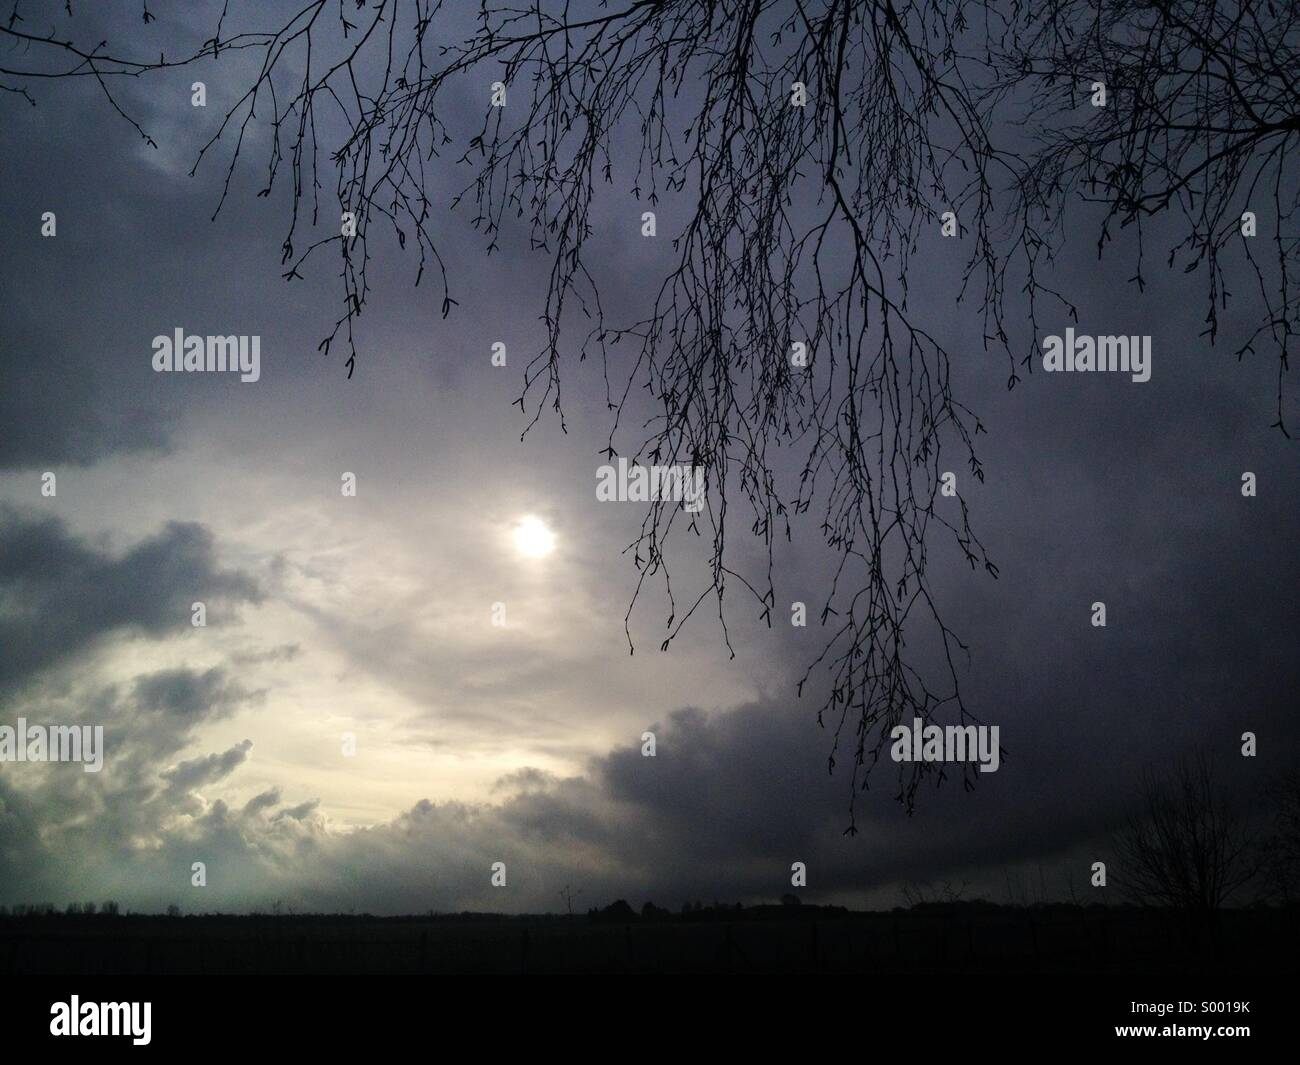 Rainy weather - Stock Image